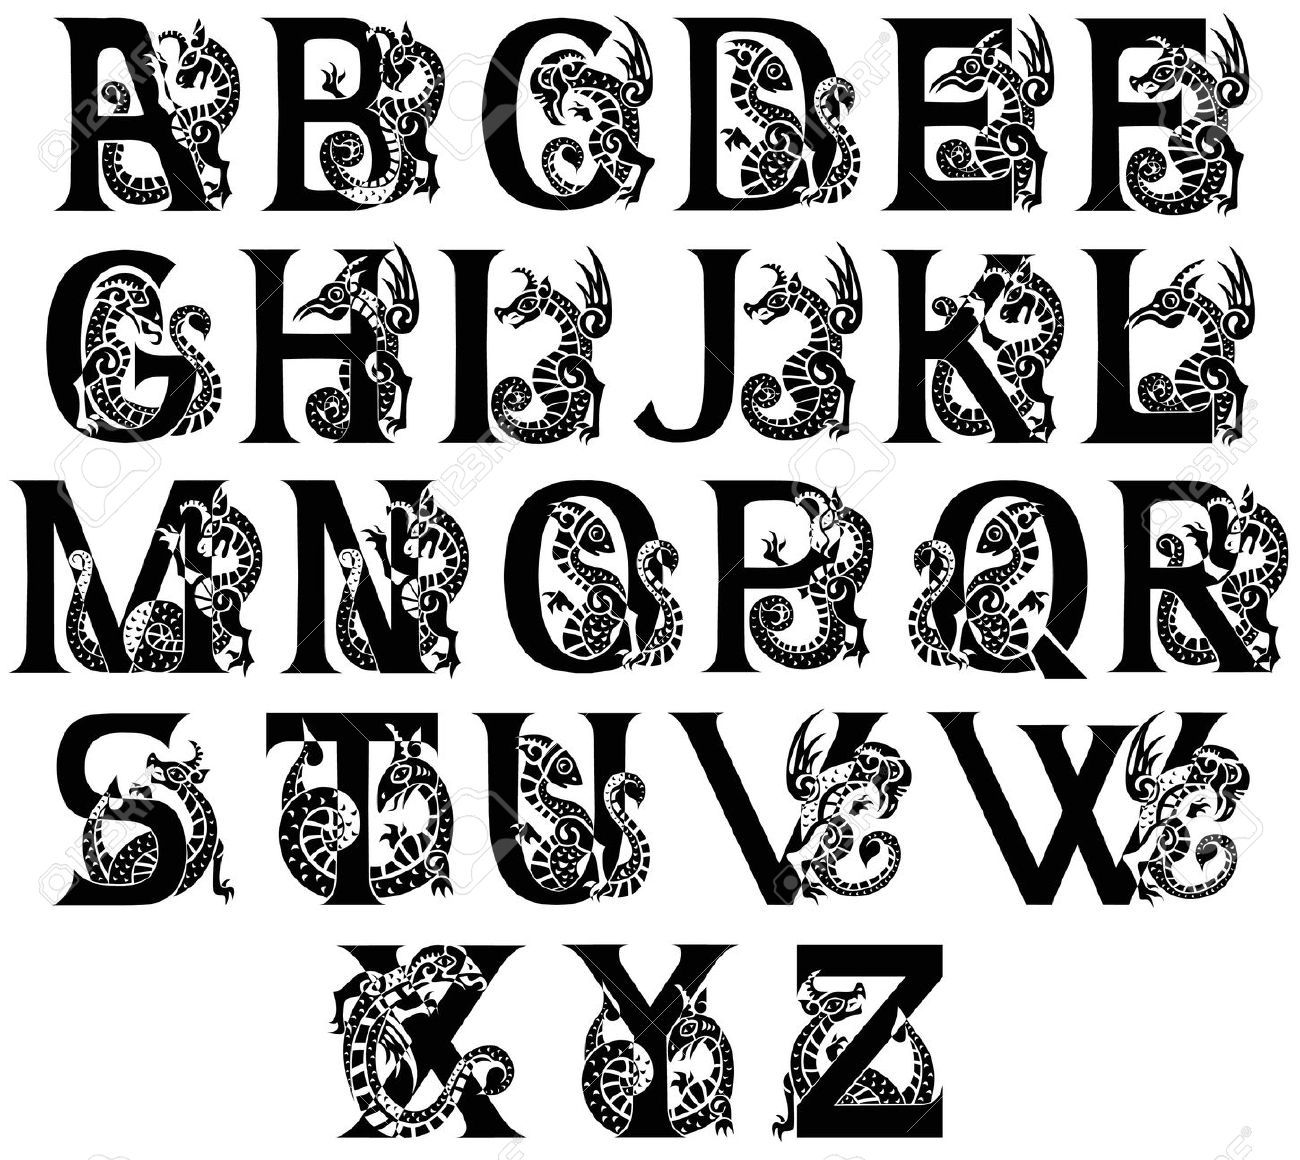 Ornate Gothic Letter Google Search Lettering